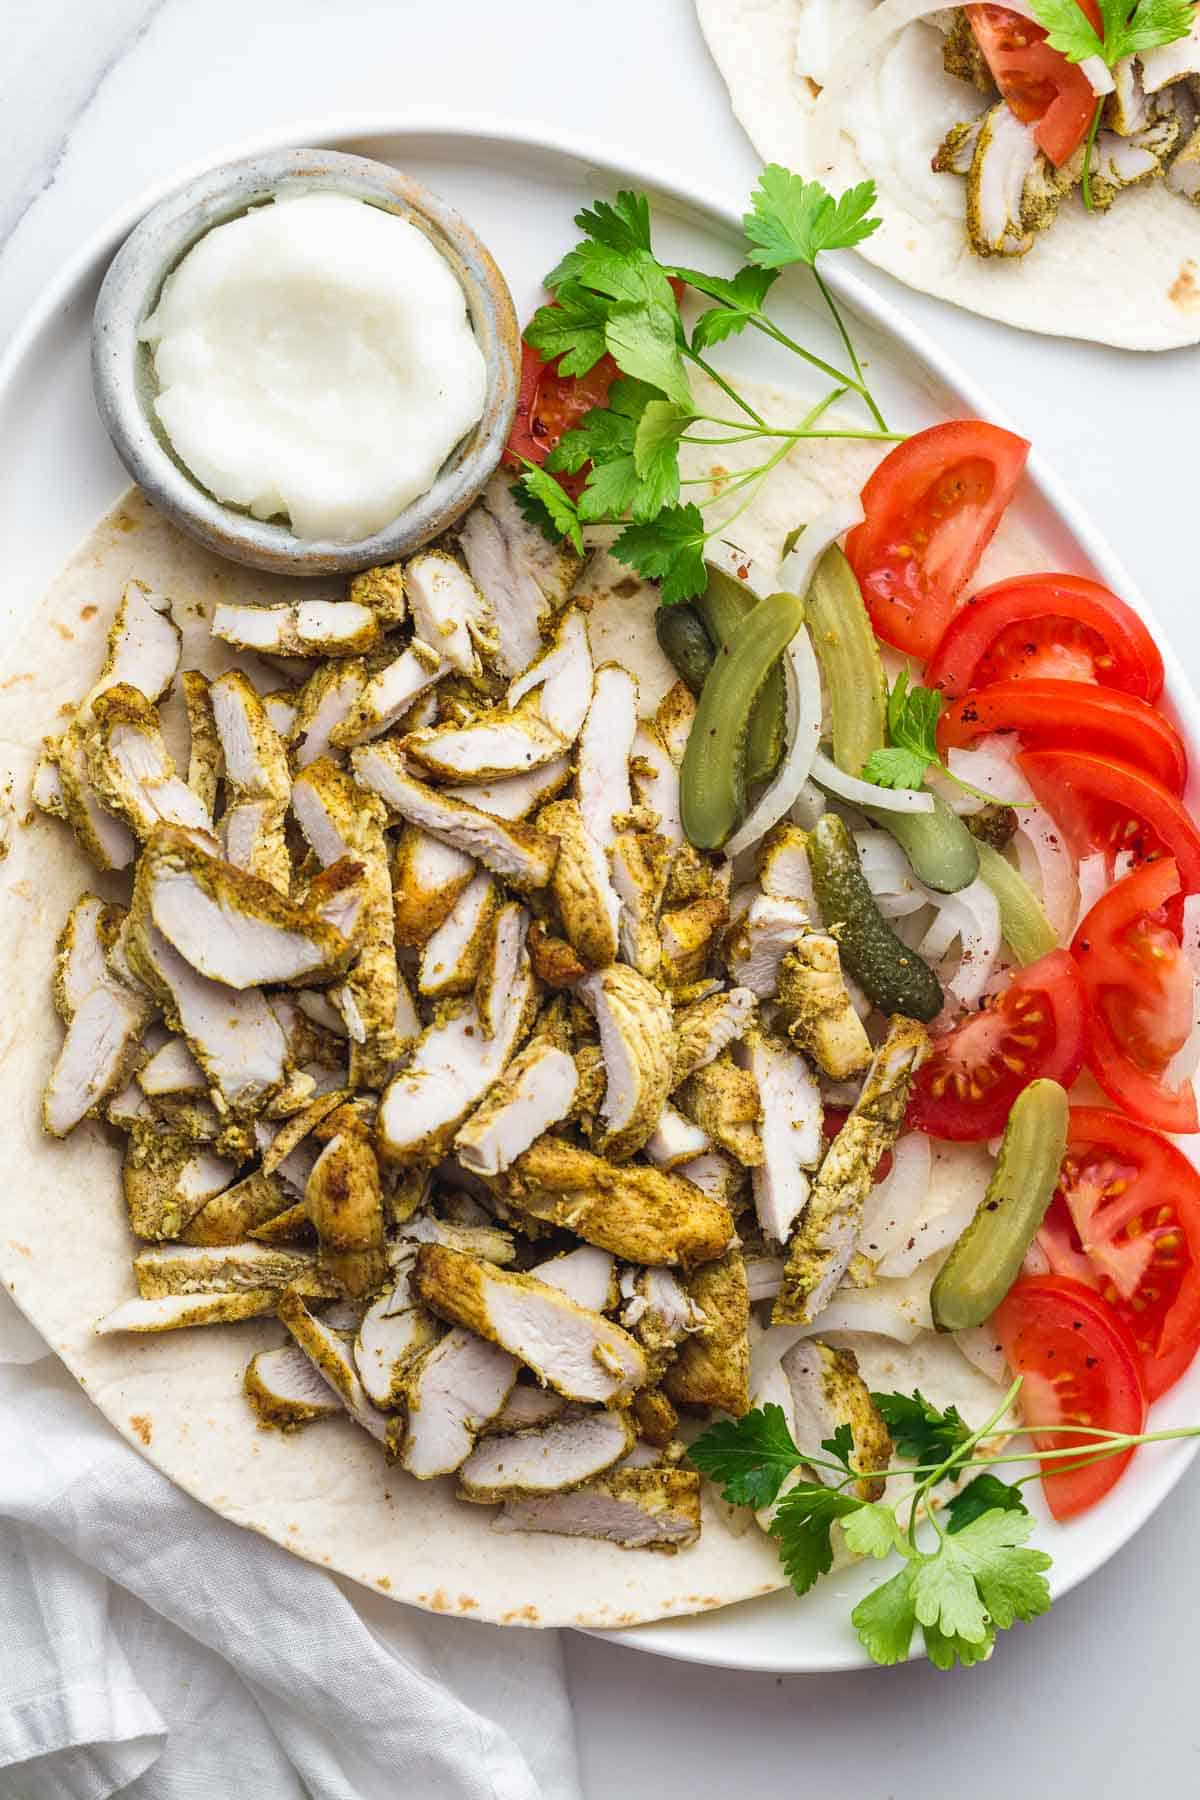 A chicken shawarma platter with sliced tomato, sliced onion, and pickles